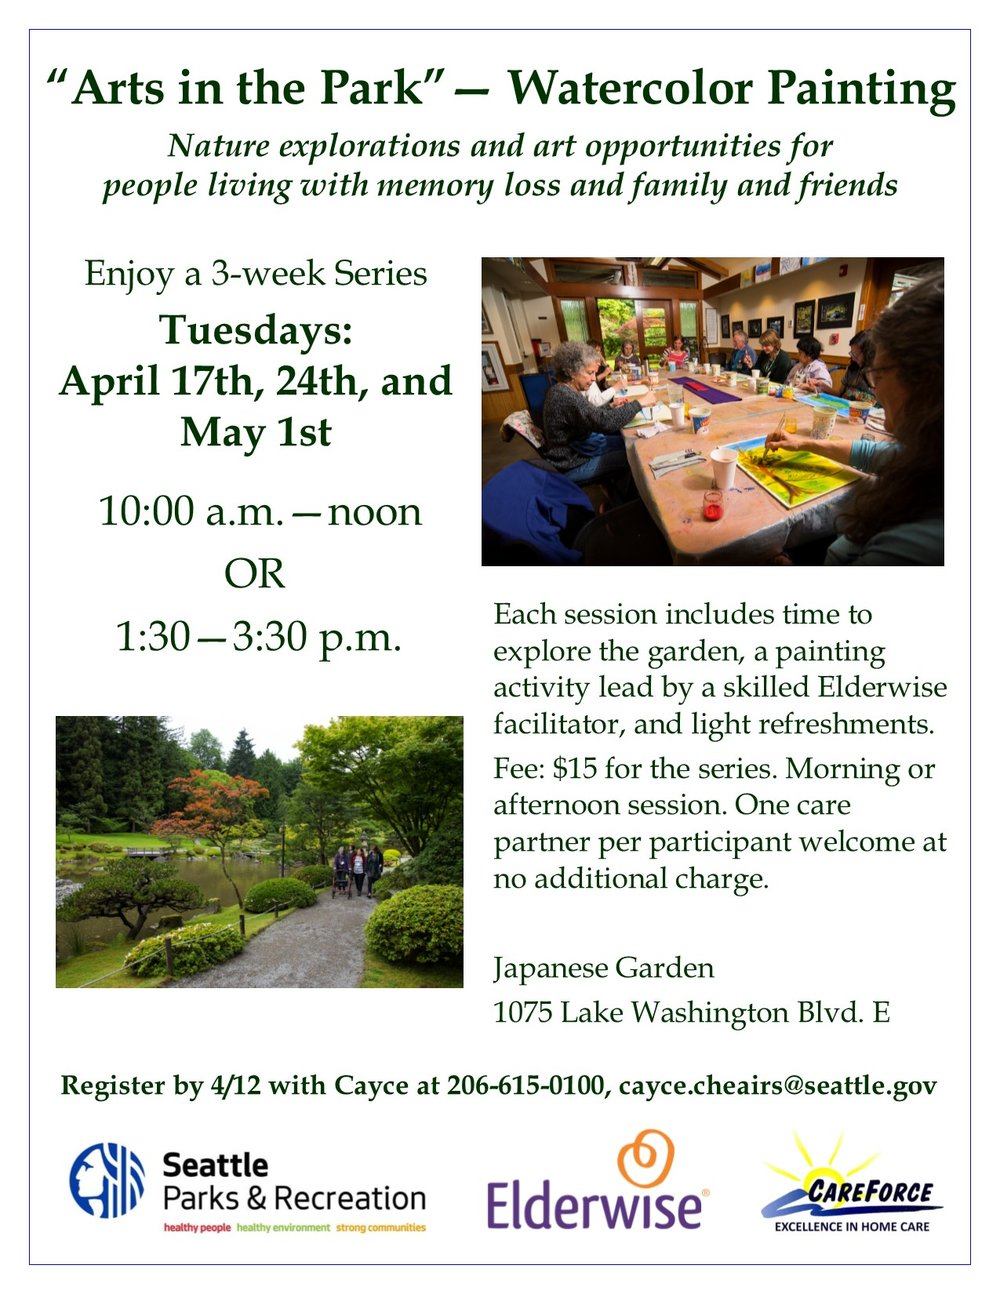 Arts in the Park Japanese Garden Flyer Spring 2018.jpg